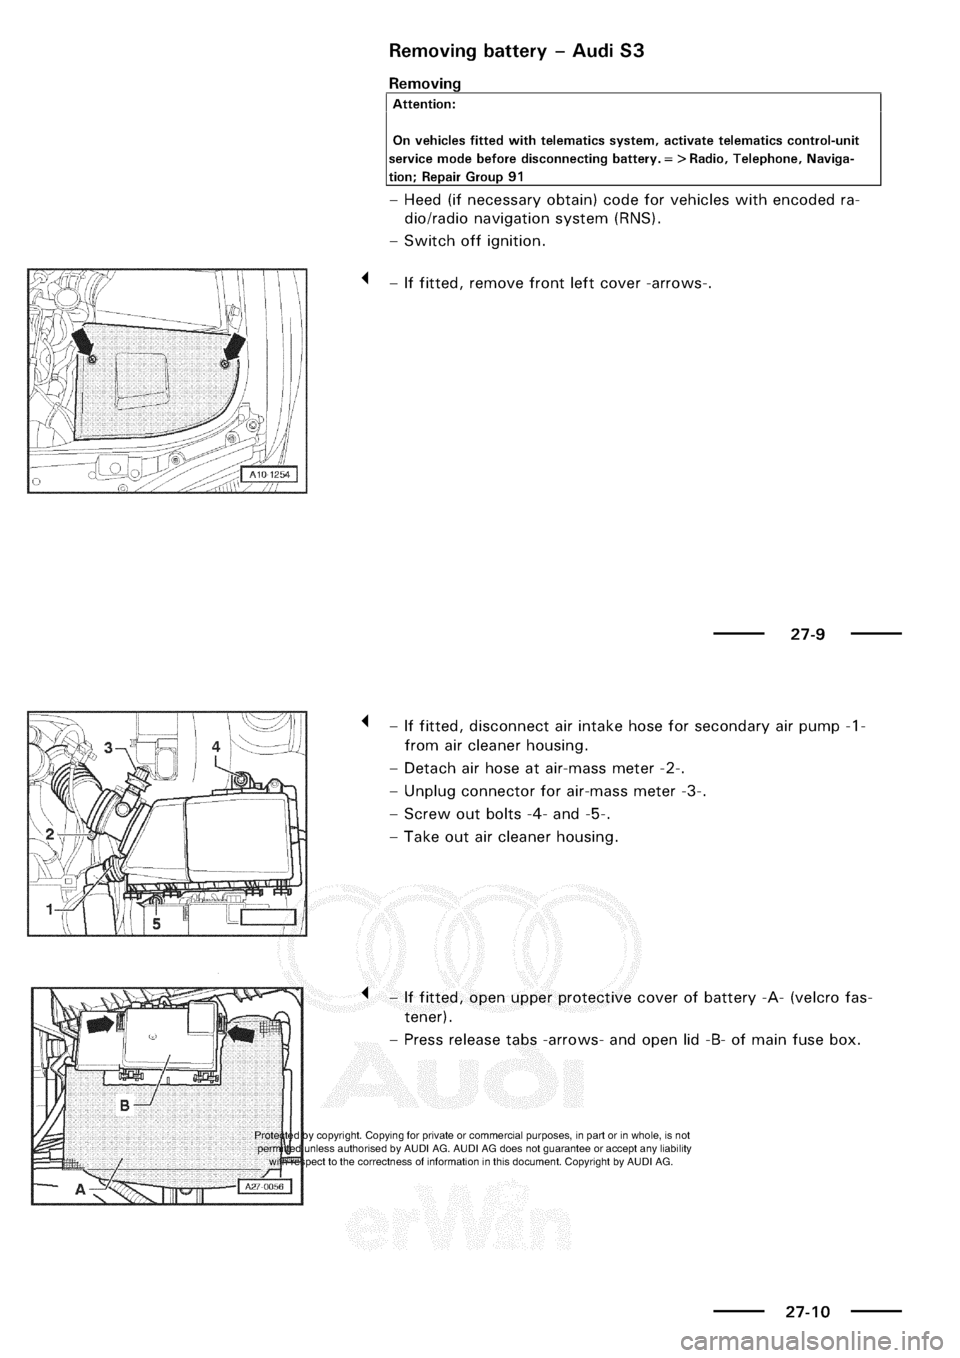 Audi A3 1998 8l 1g Electrical System Workshop Manual Fuse Box